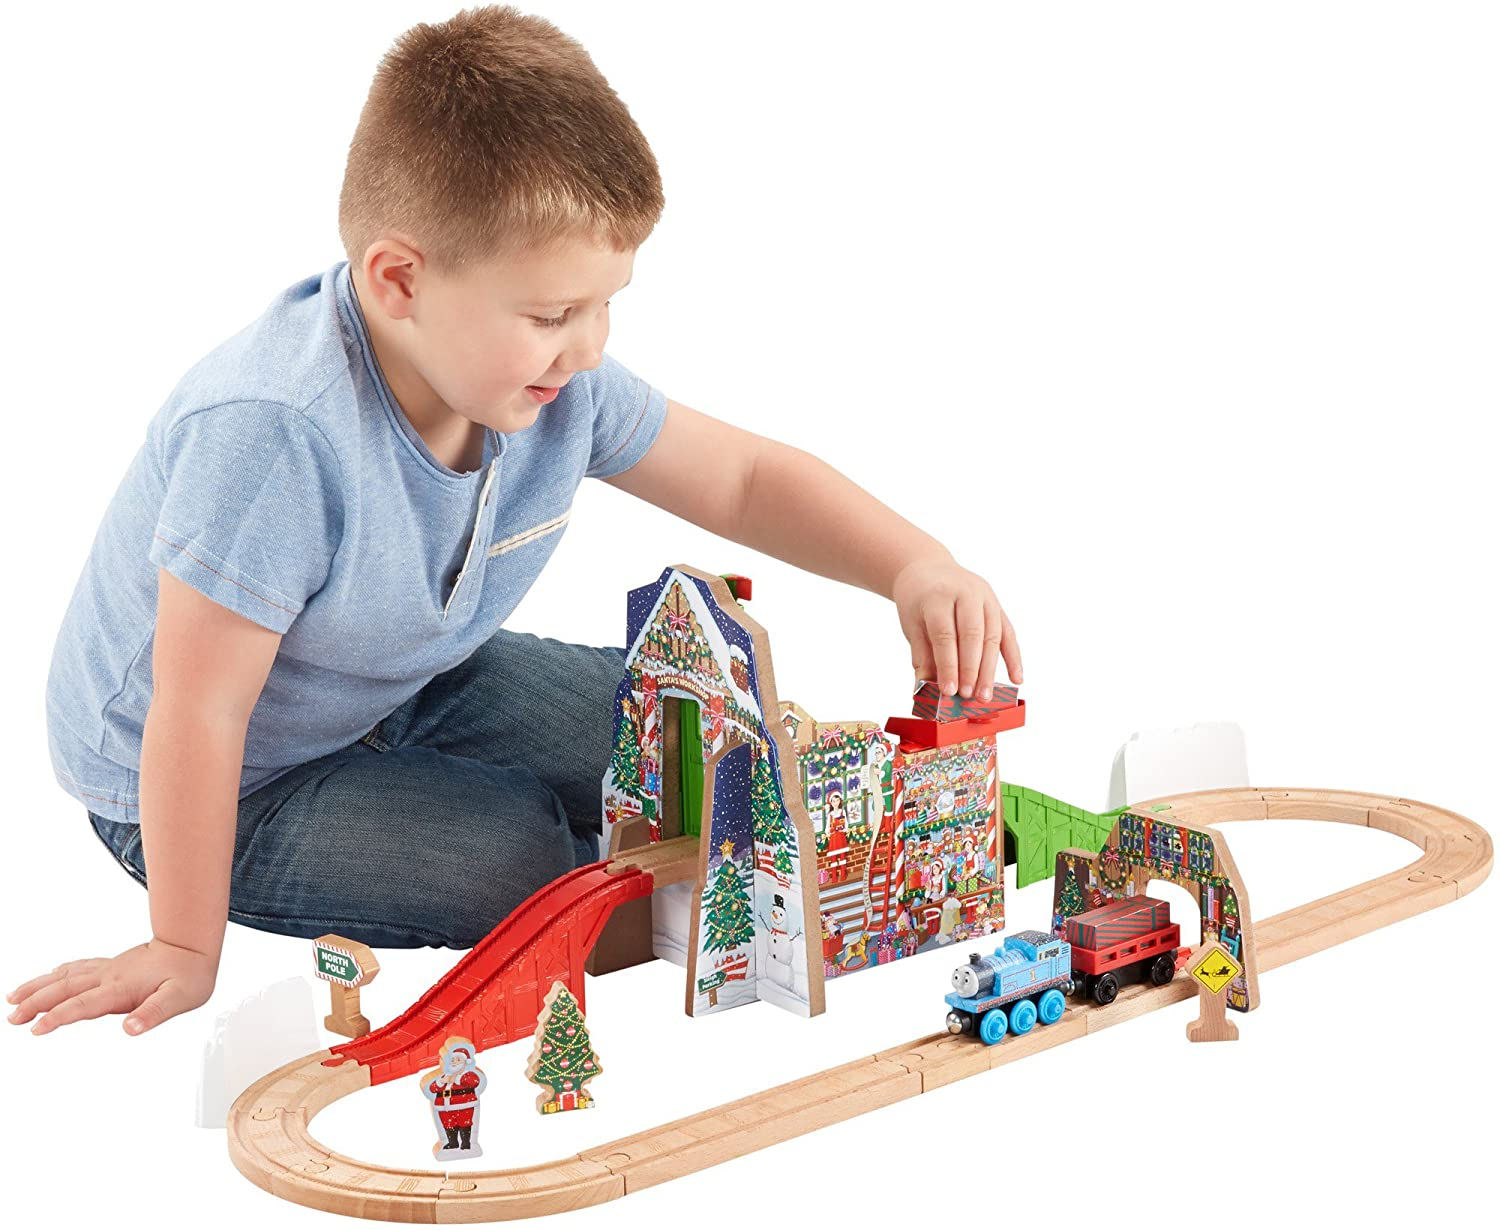 Fisher-Price Thomas & Friends Wooden Railway, Santas Workshop Express